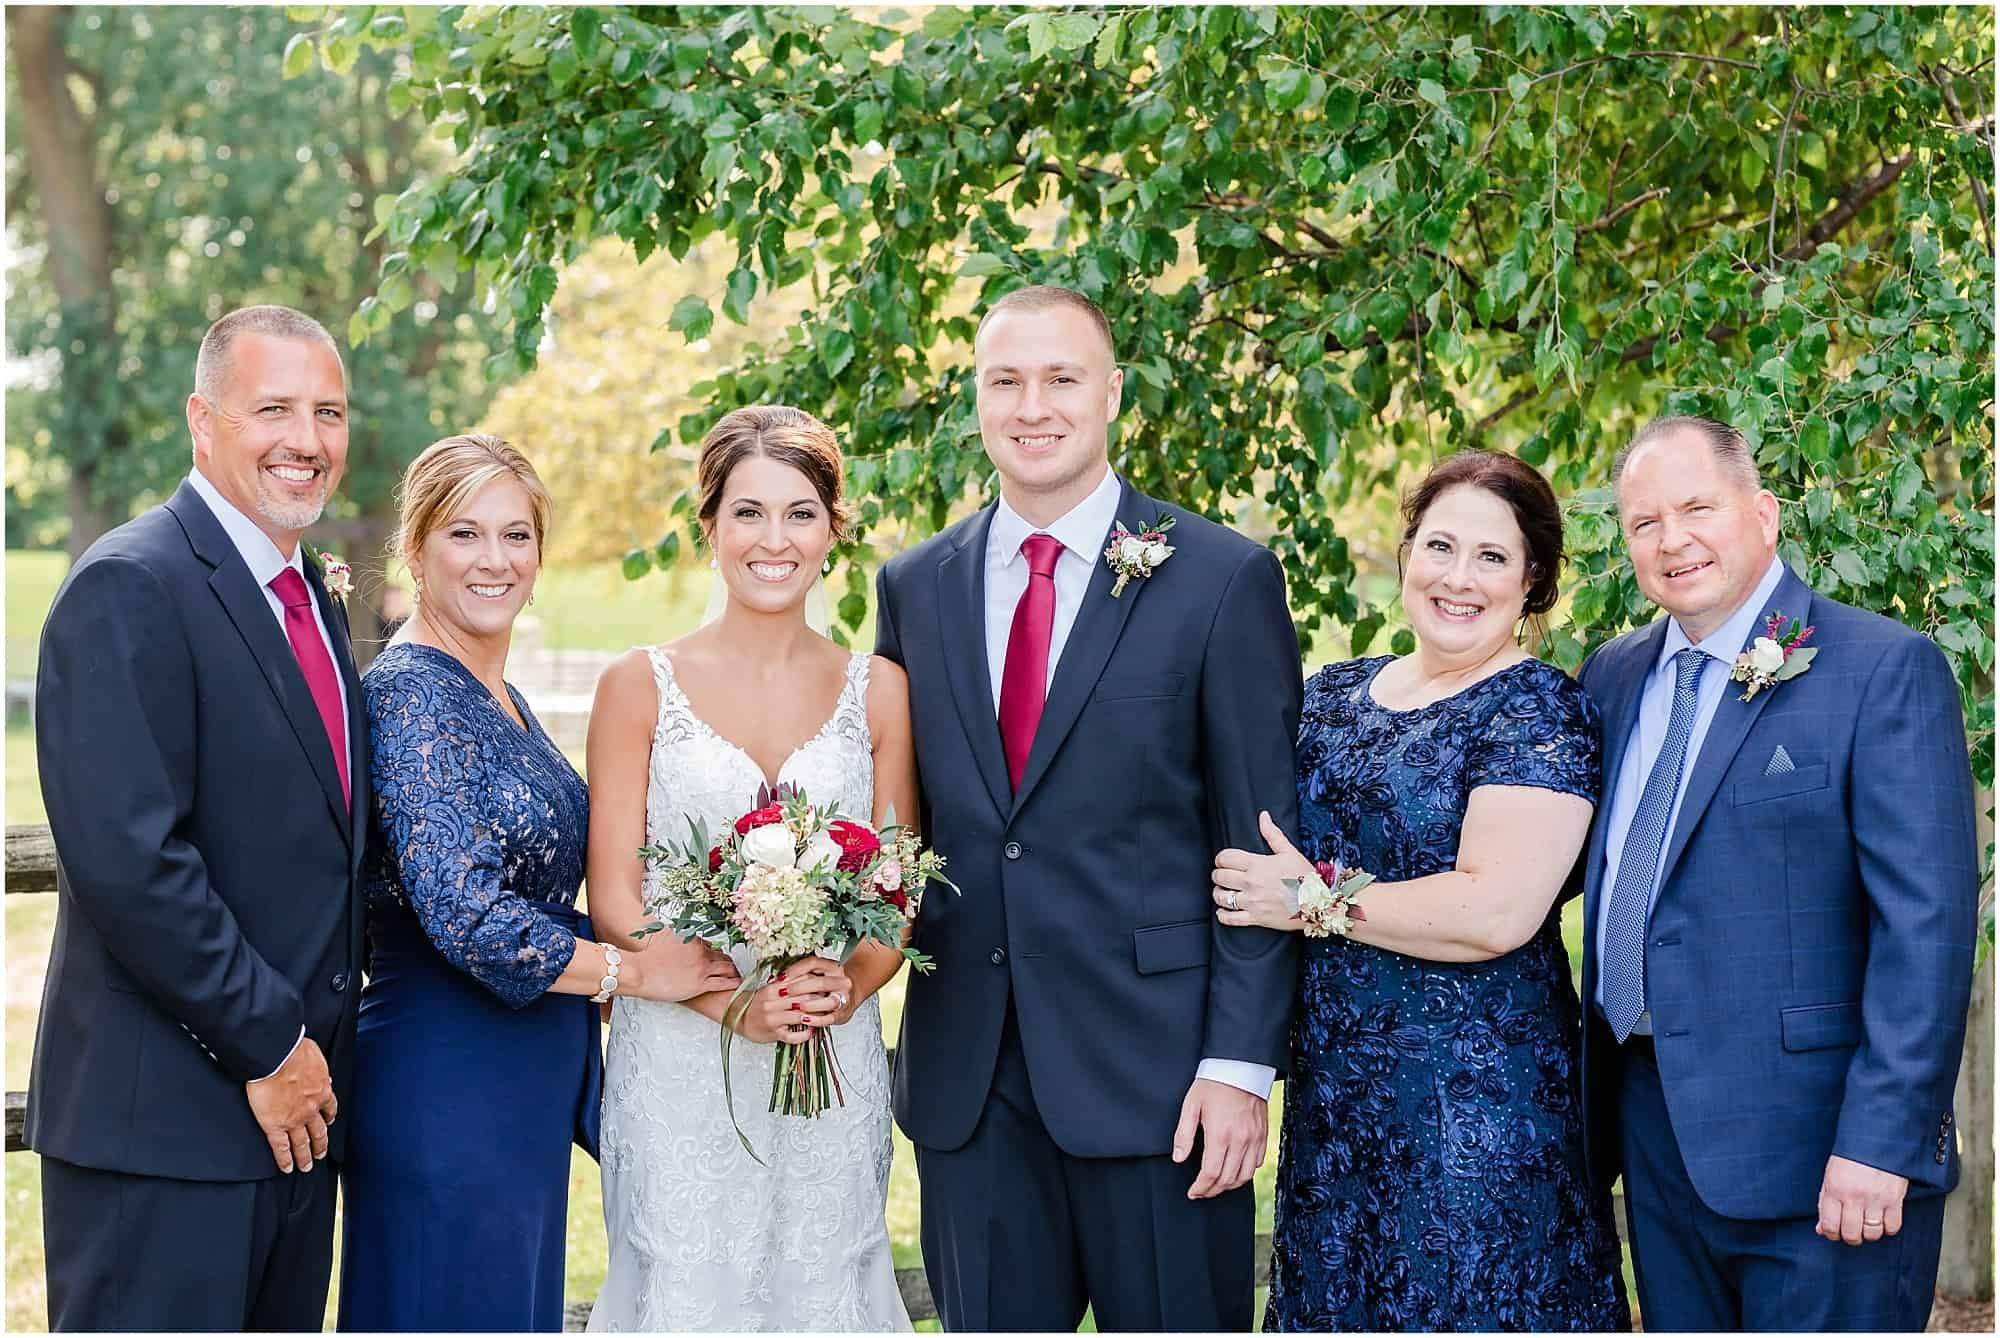 family portrait after wedding at millsite lodge by tiffany murray